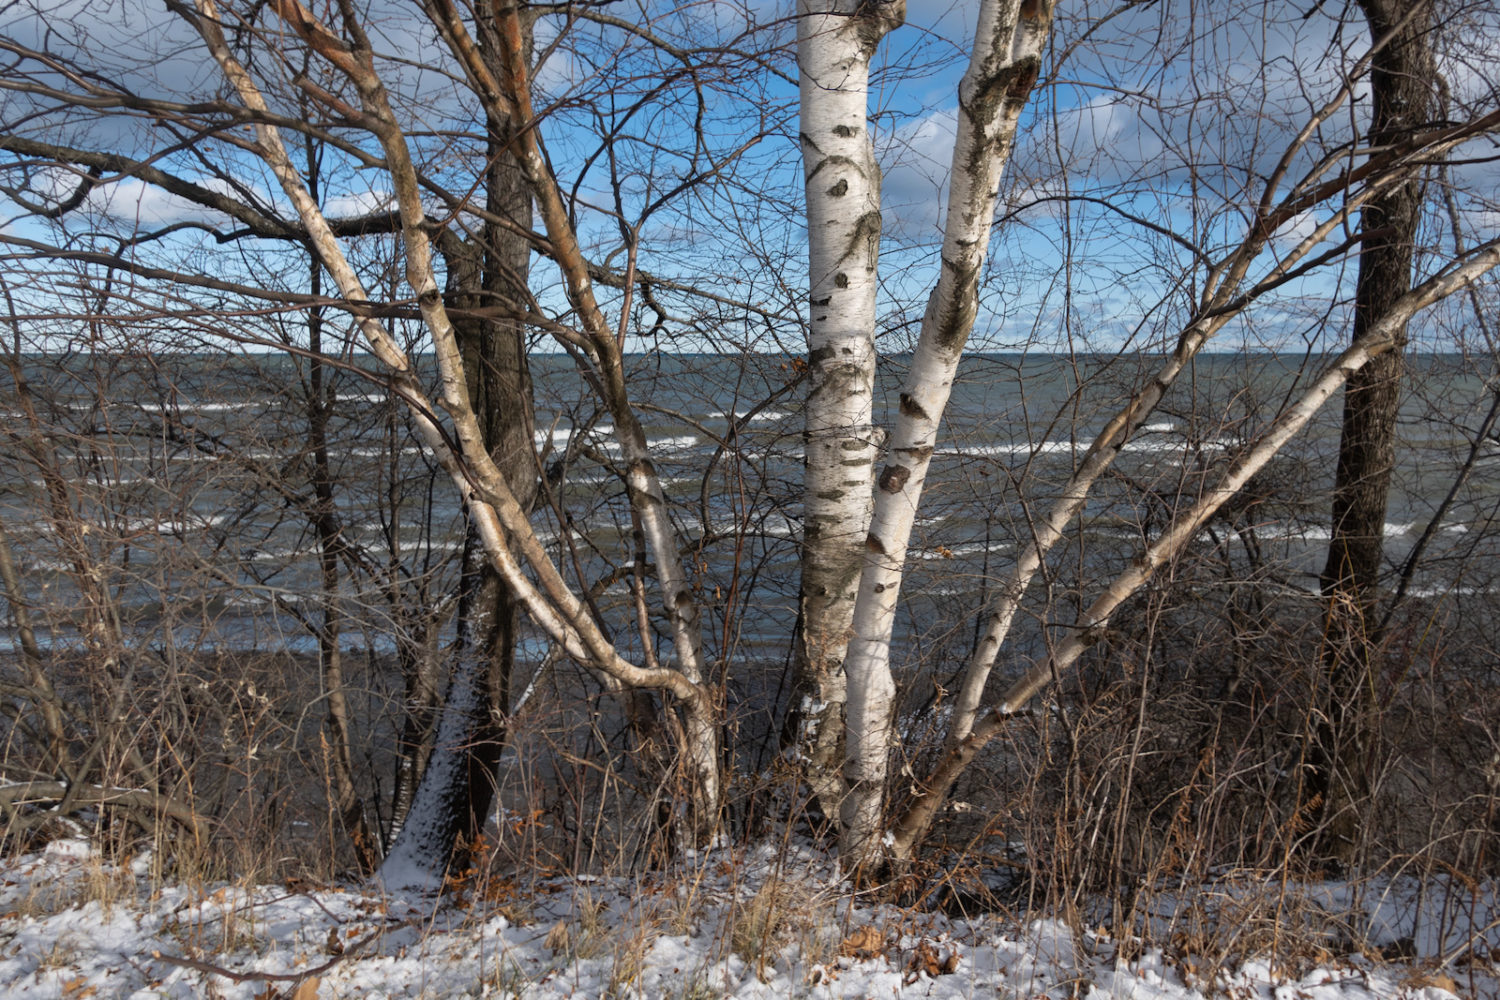 Birch trees along Lake Ontario in January